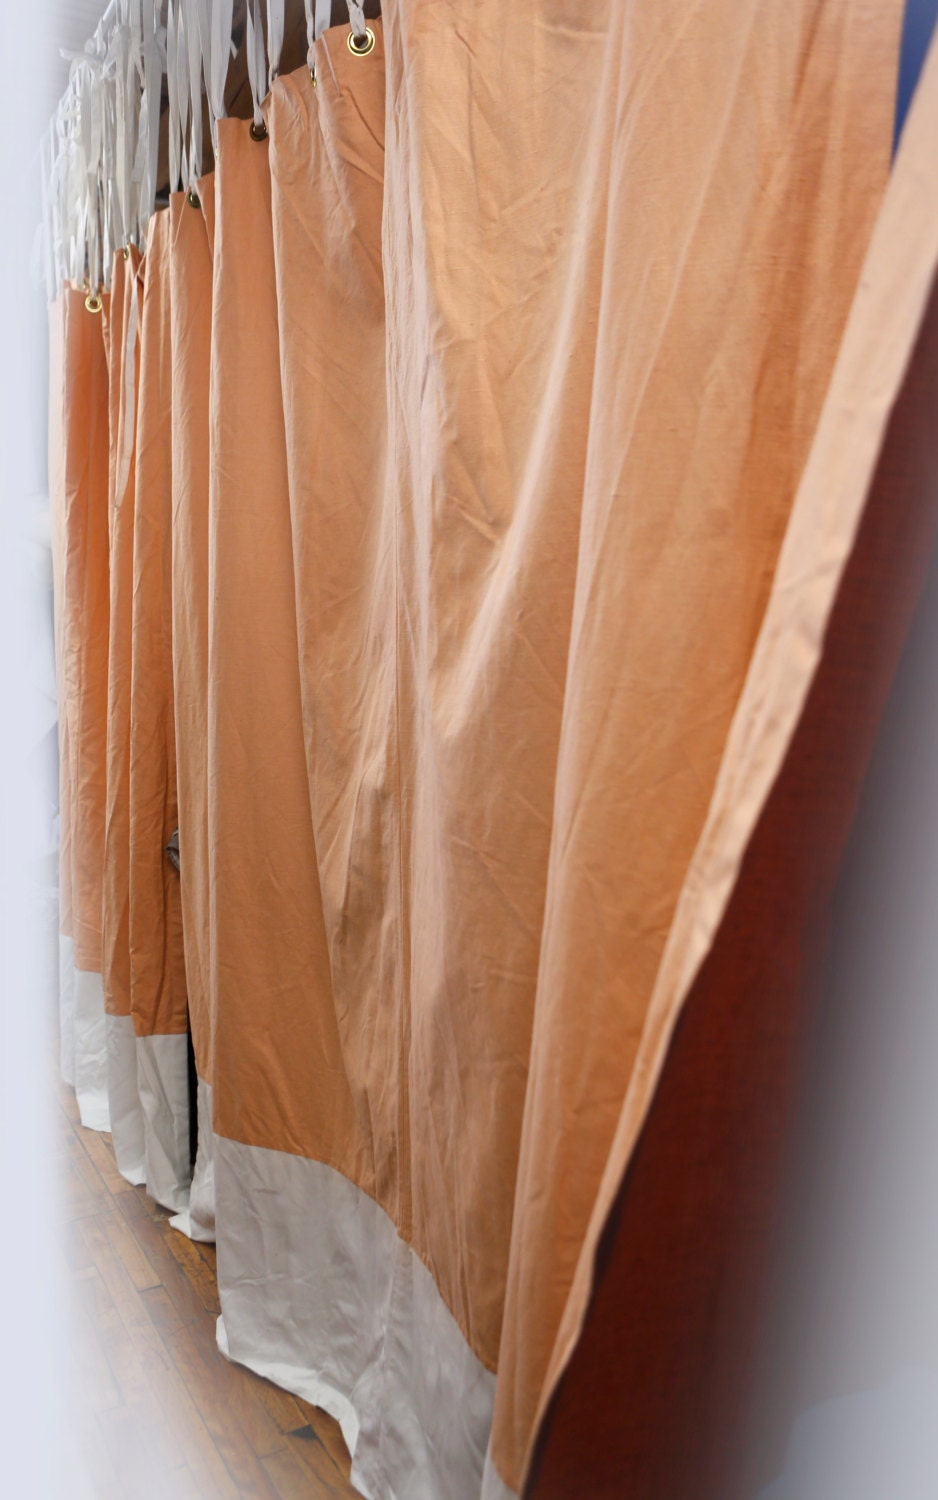 Peach Color Linen Curtain Panel Thick Heavy Weight High